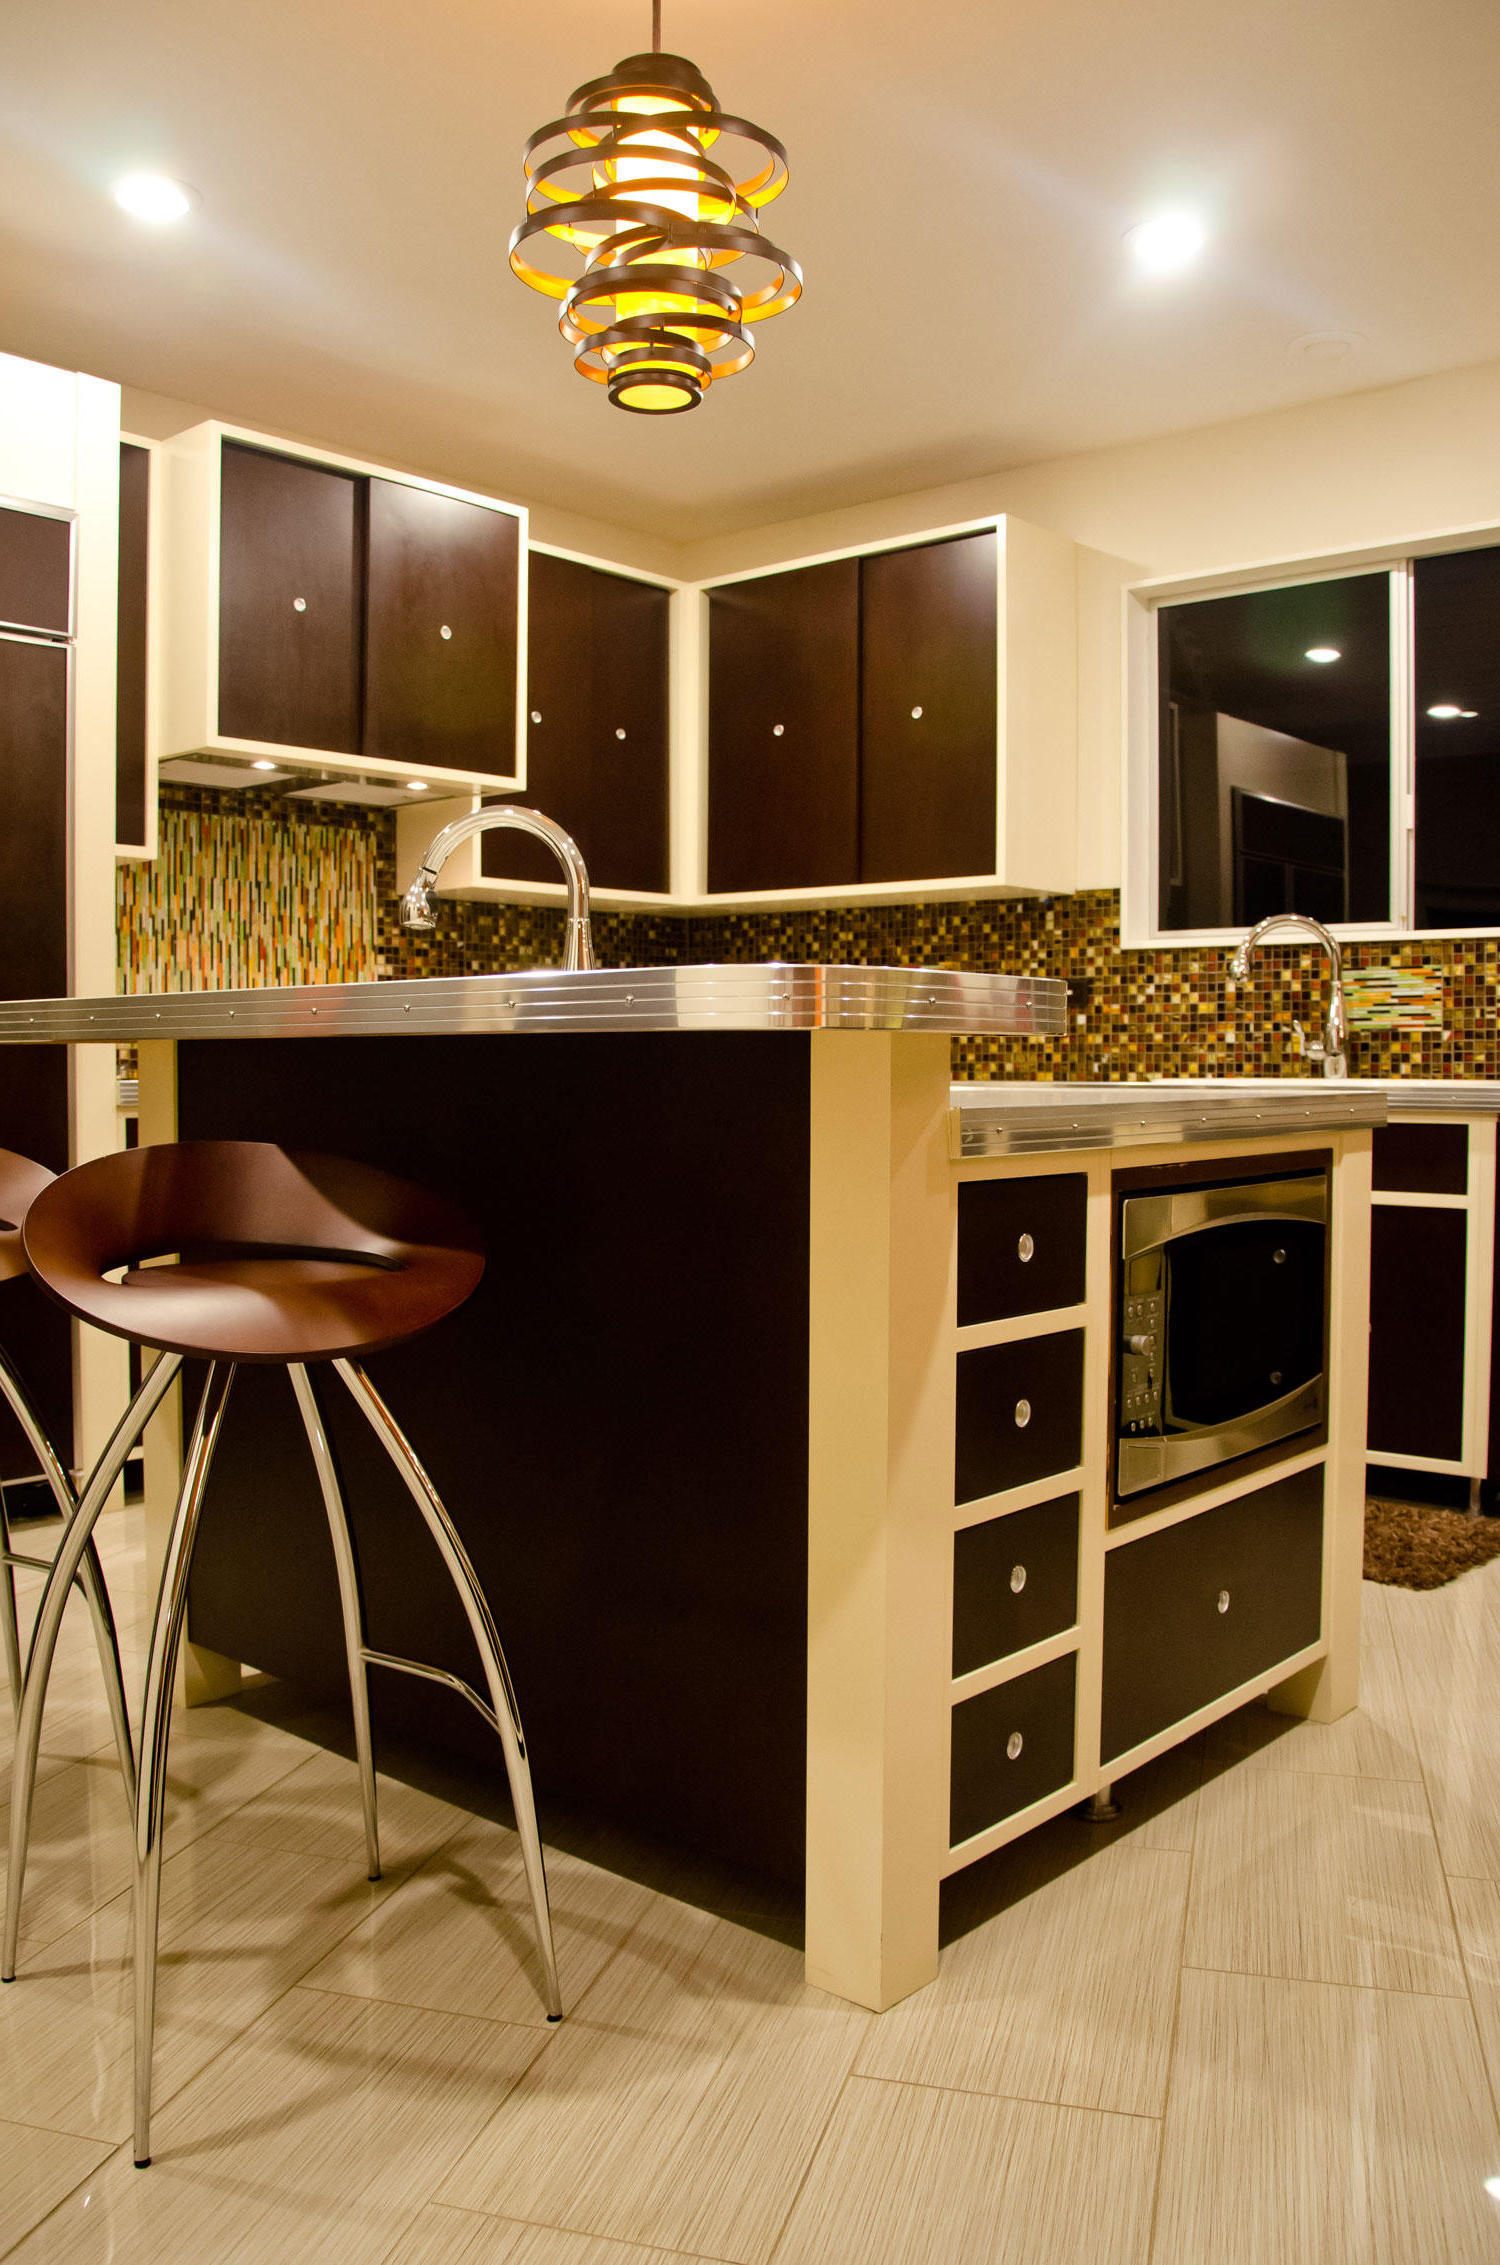 2015 Modern Small Kitchen Interior (Image 1 of 6)